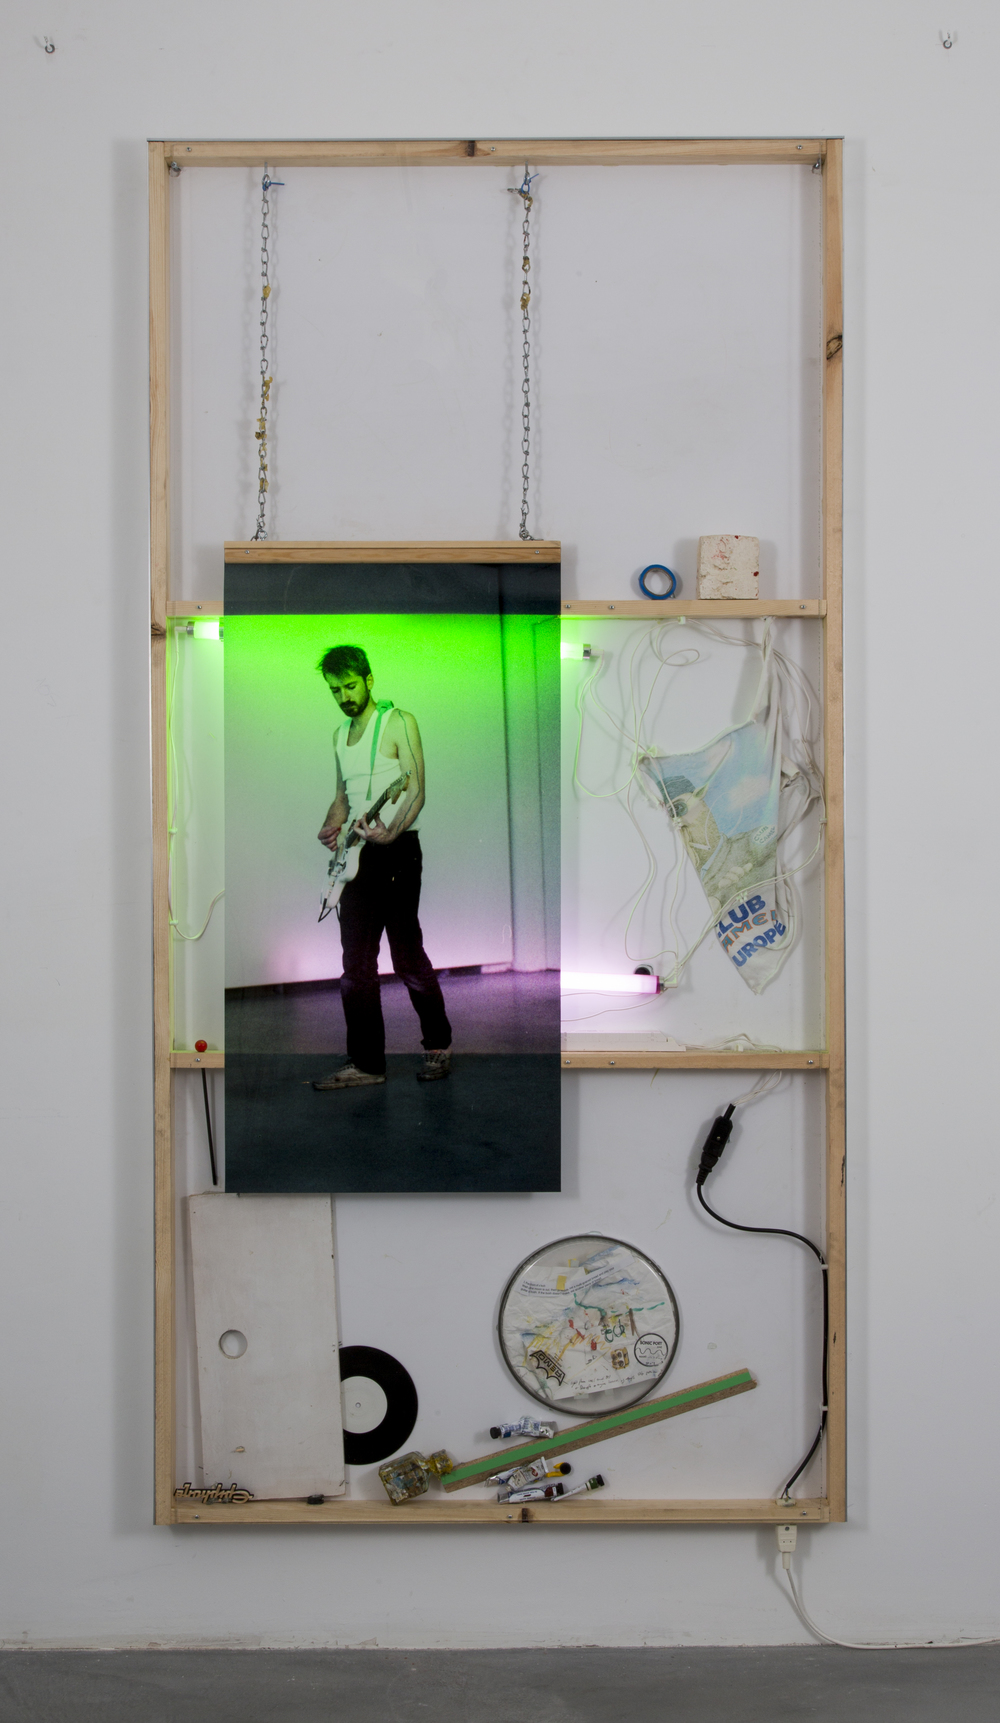 Joris Van de Moortel ,  The cyclic character of playing through a repetition of the same fragment, me, KB Berlin  (2015). 78.95 x 39.75 x 2.2 inches. Wood, Plexiglass, aluminum, printing on Duratrans, green and pink light-tubes, battery pieces, drawing on paper, vinyl, and various objects undefined. ( Photo :   ©   WE DOCUMENT ART)